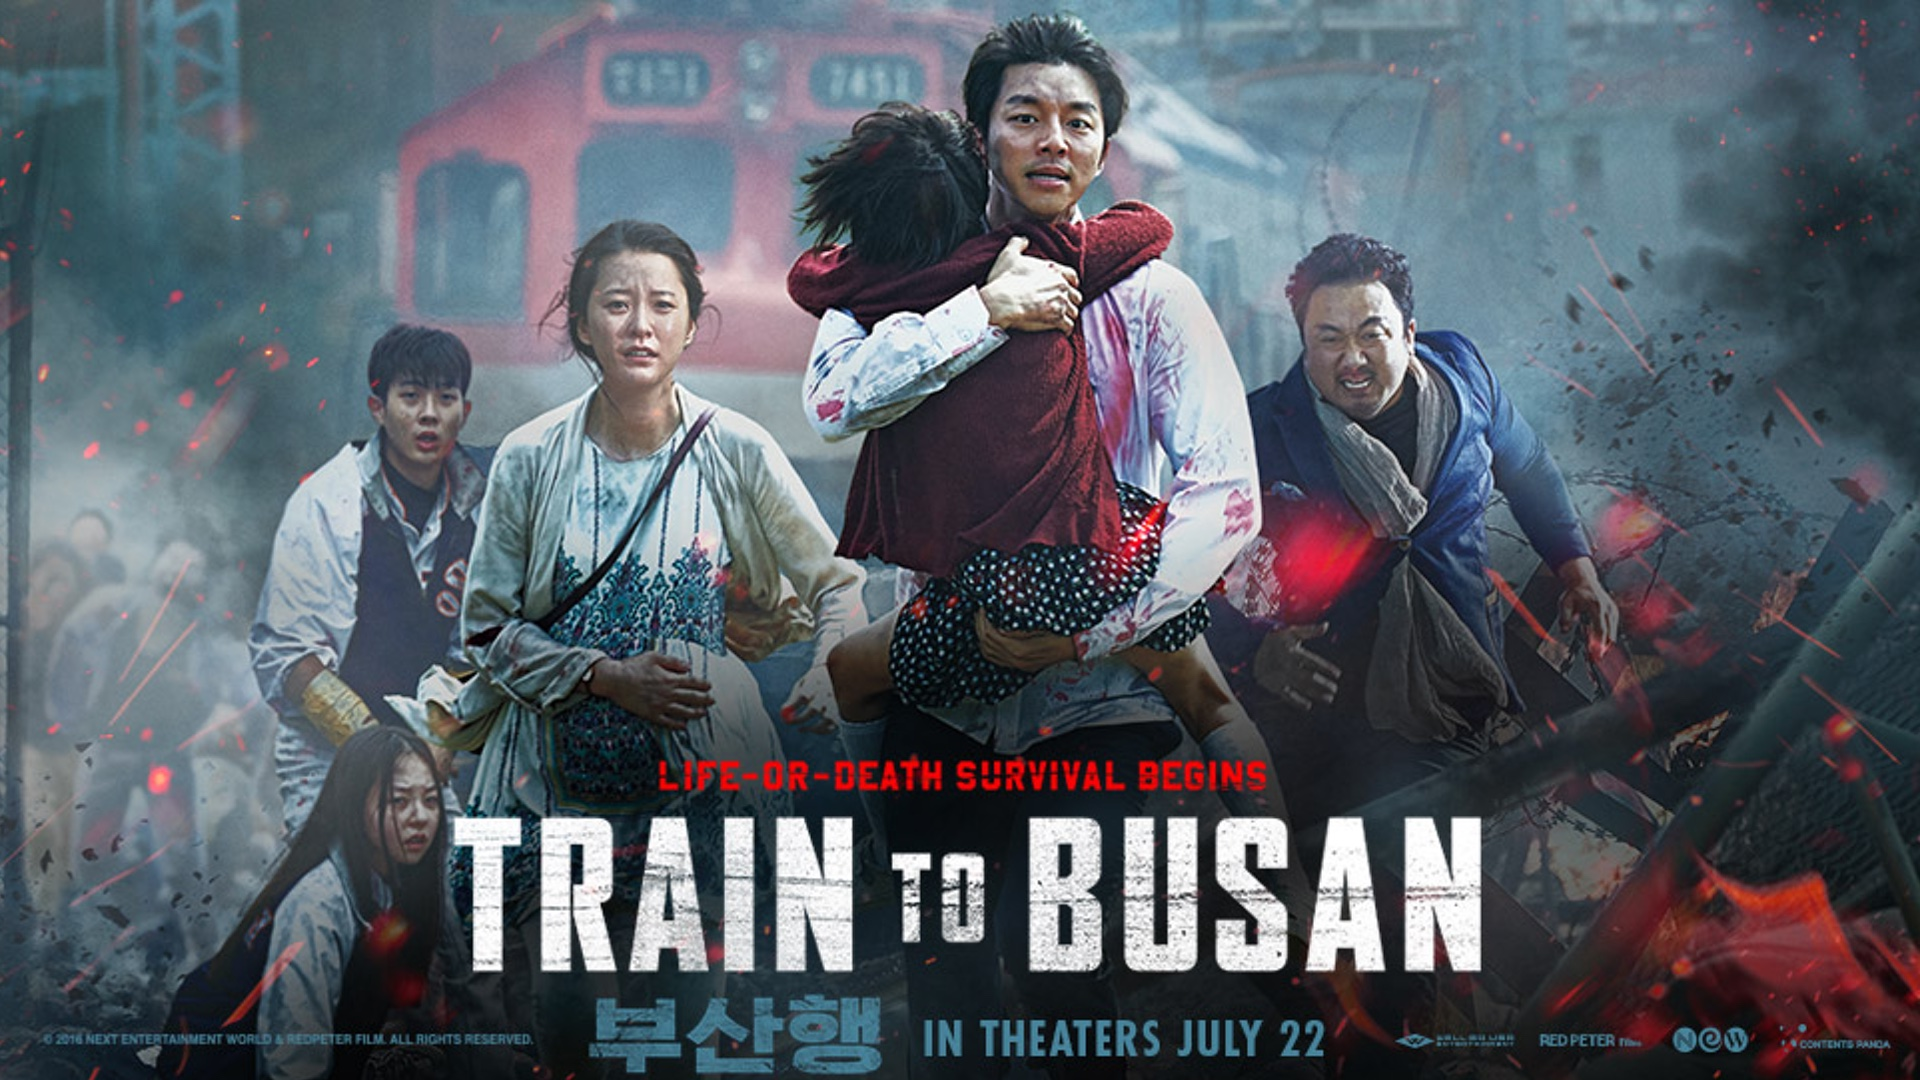 Train to Busan (2016) [Korean]